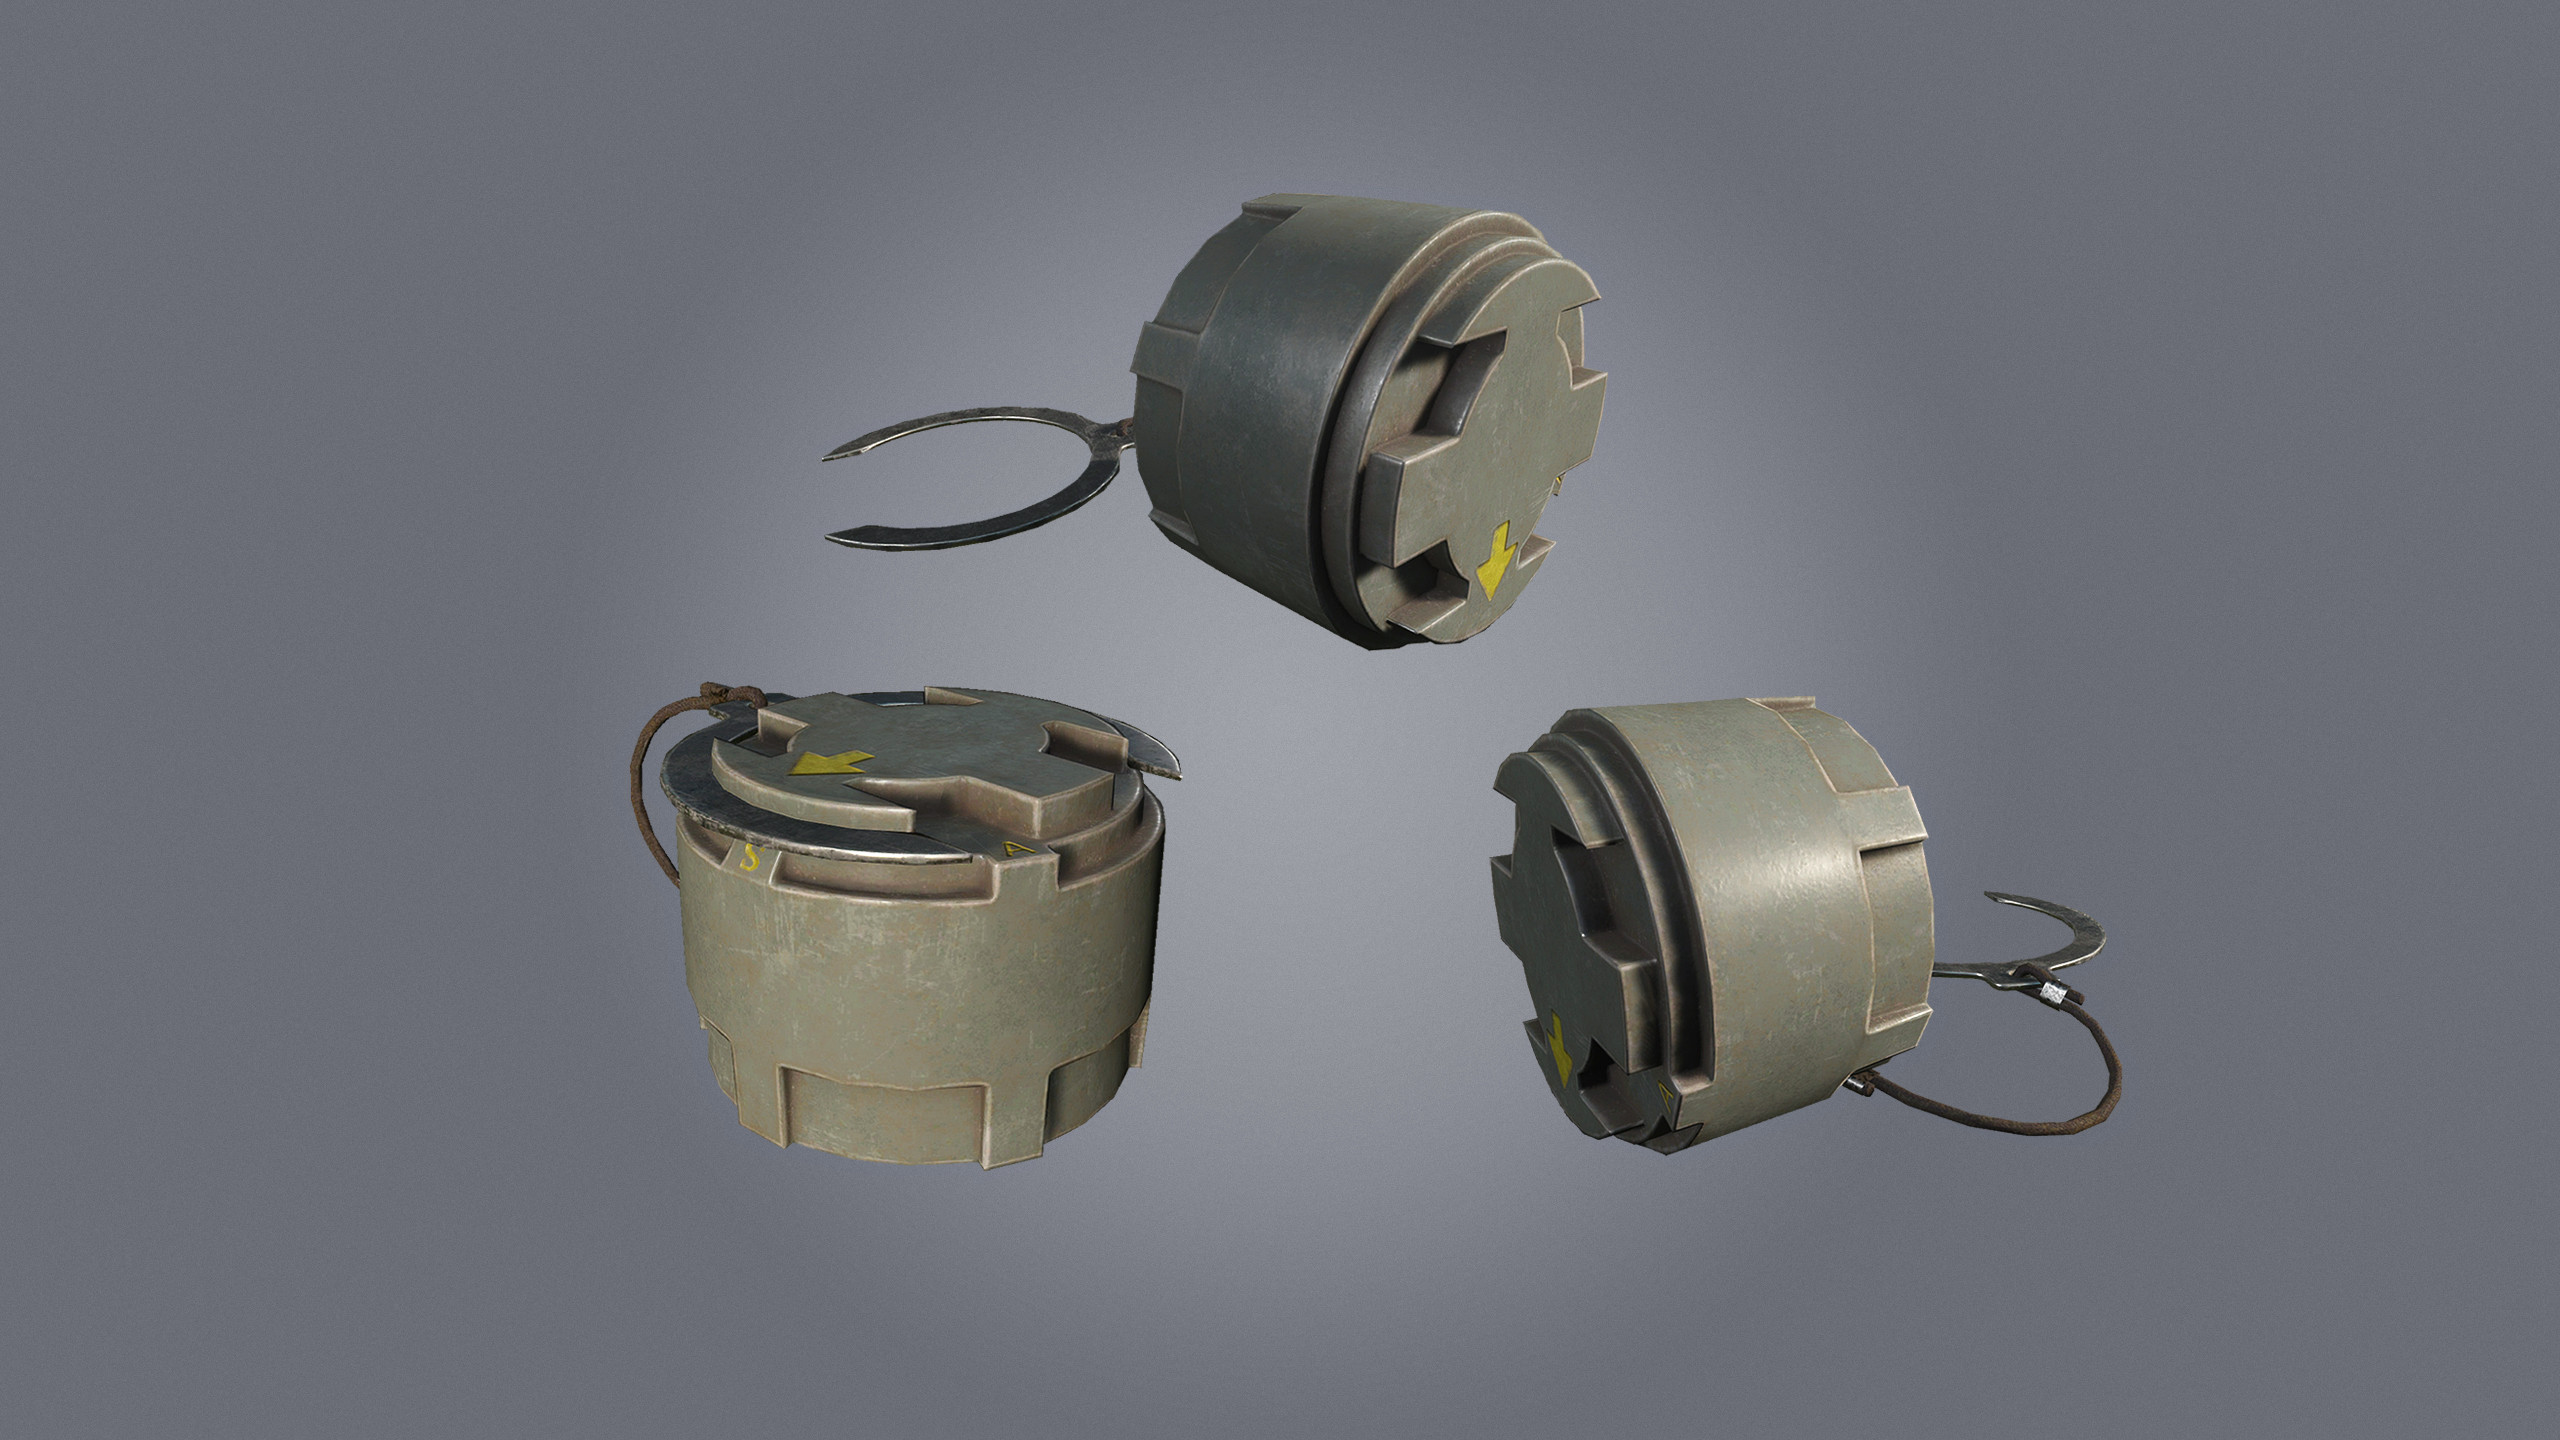 M14 landmine to send your enemies flying